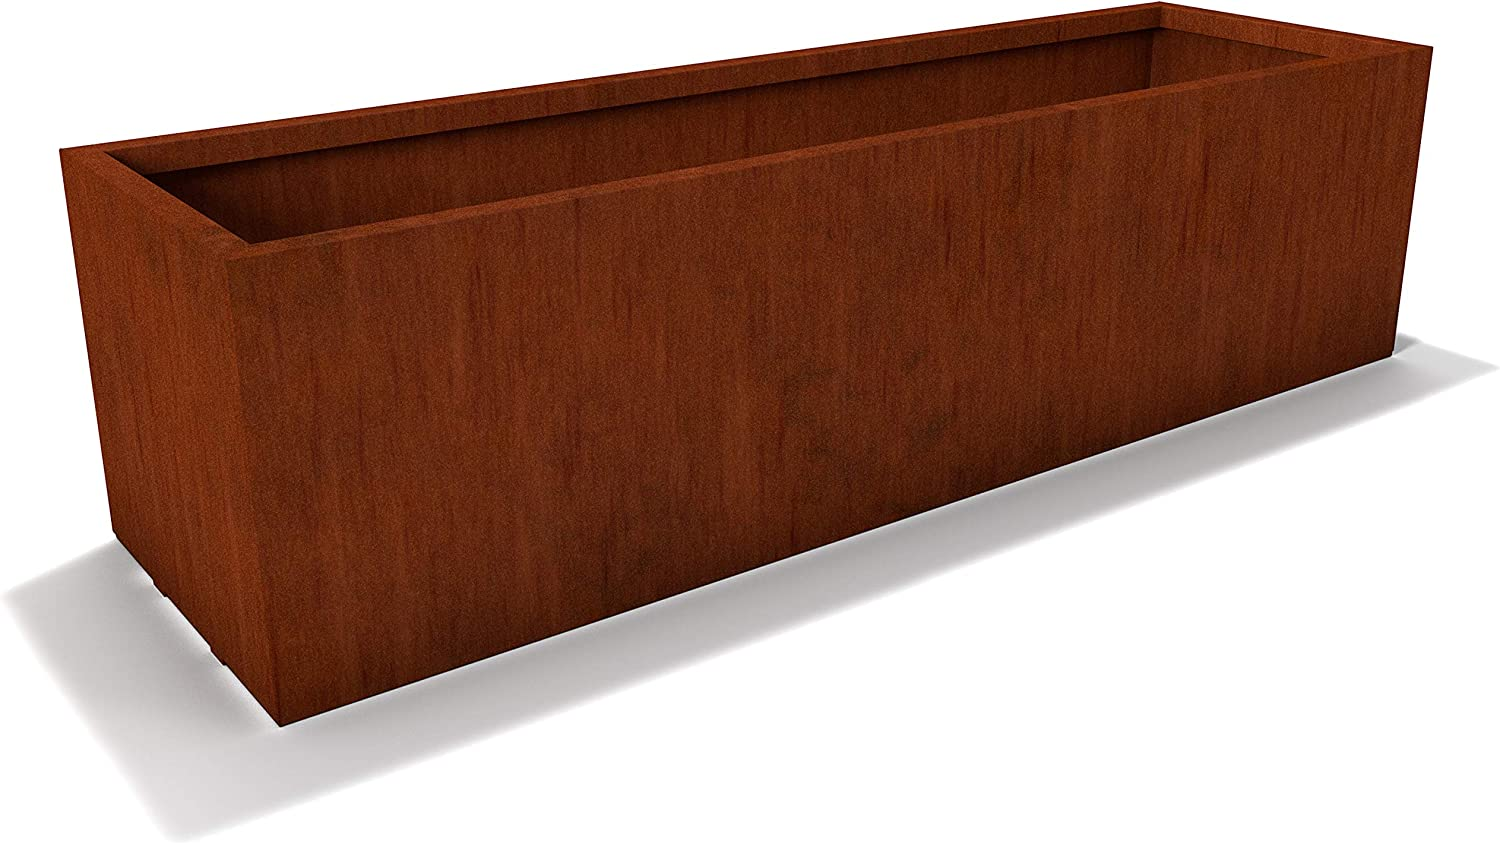 Modern CORTEN Steel Rectangle Planter Box by Lewis Bamboo (48-in L x 14-in W x 14-in T)